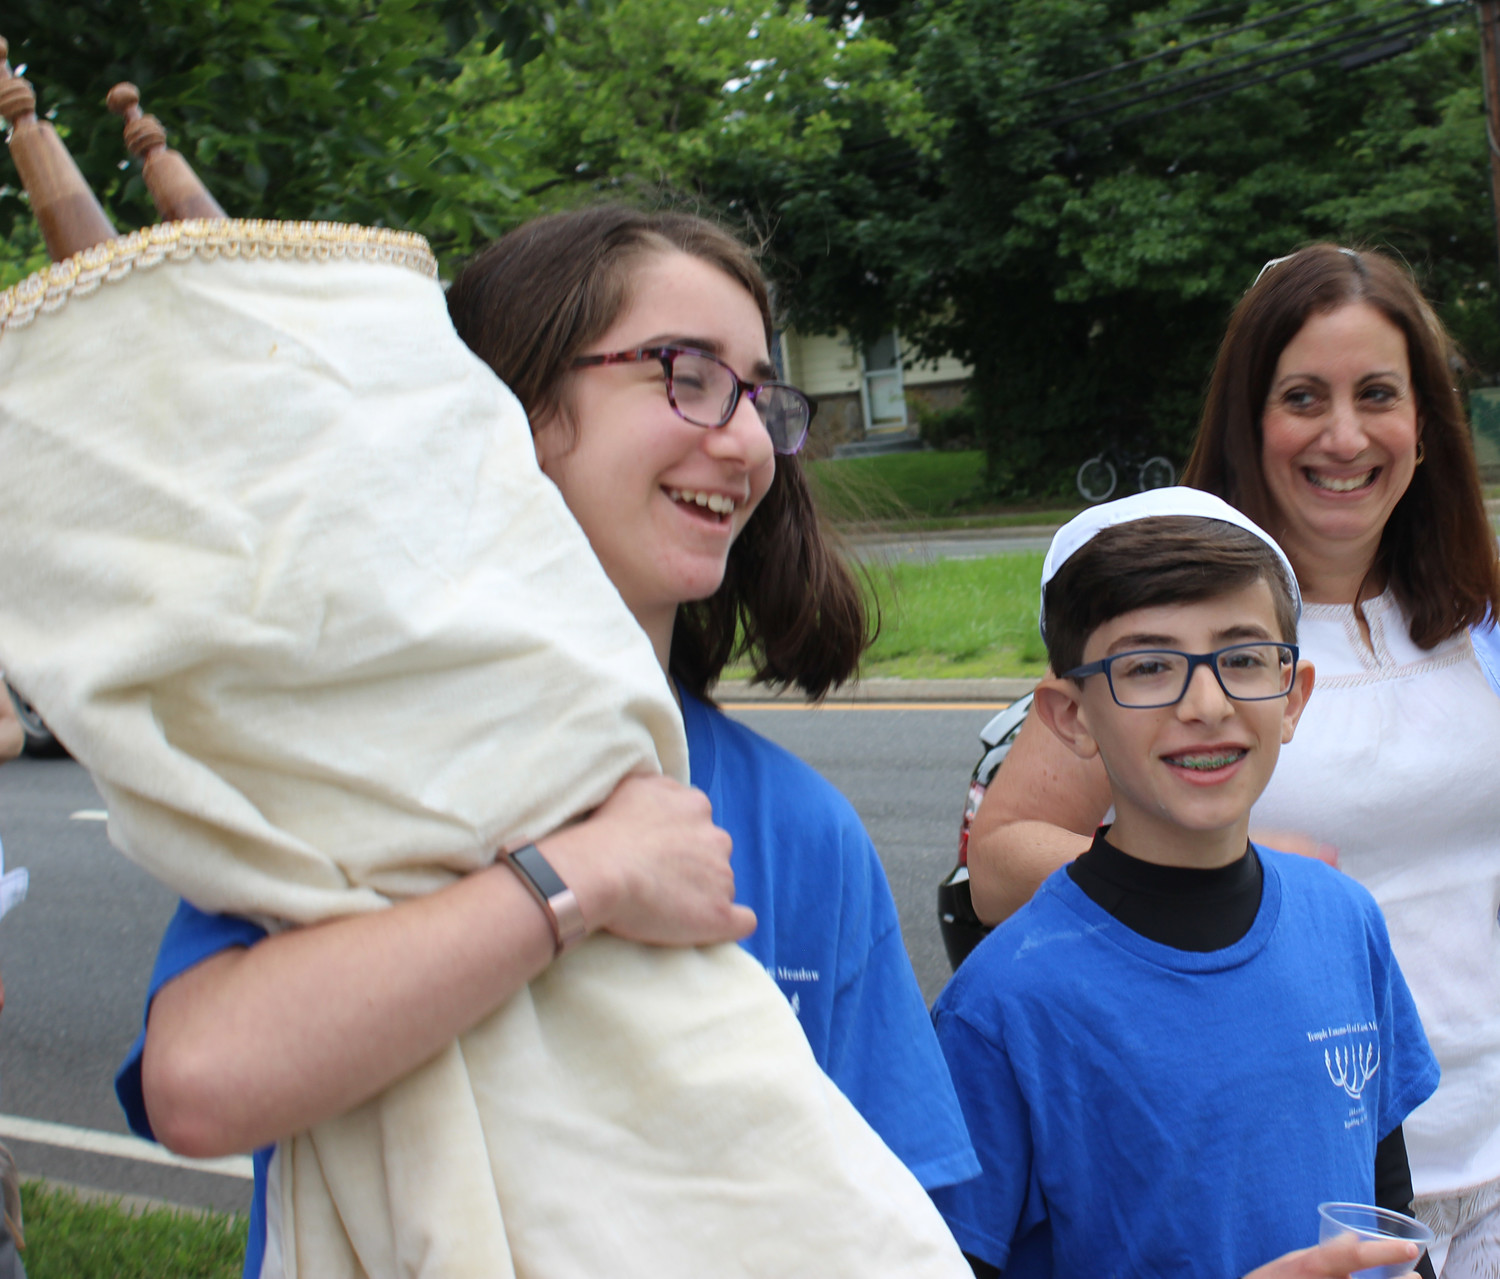 Addison Baroukh, 12, left, had the last bat mitzvah at Temple Emanu-El, reaching the age at which she could carry the torah. Her brother Judah, 11, will celebrate his bar mitzvah at Temple B'nai Torah.